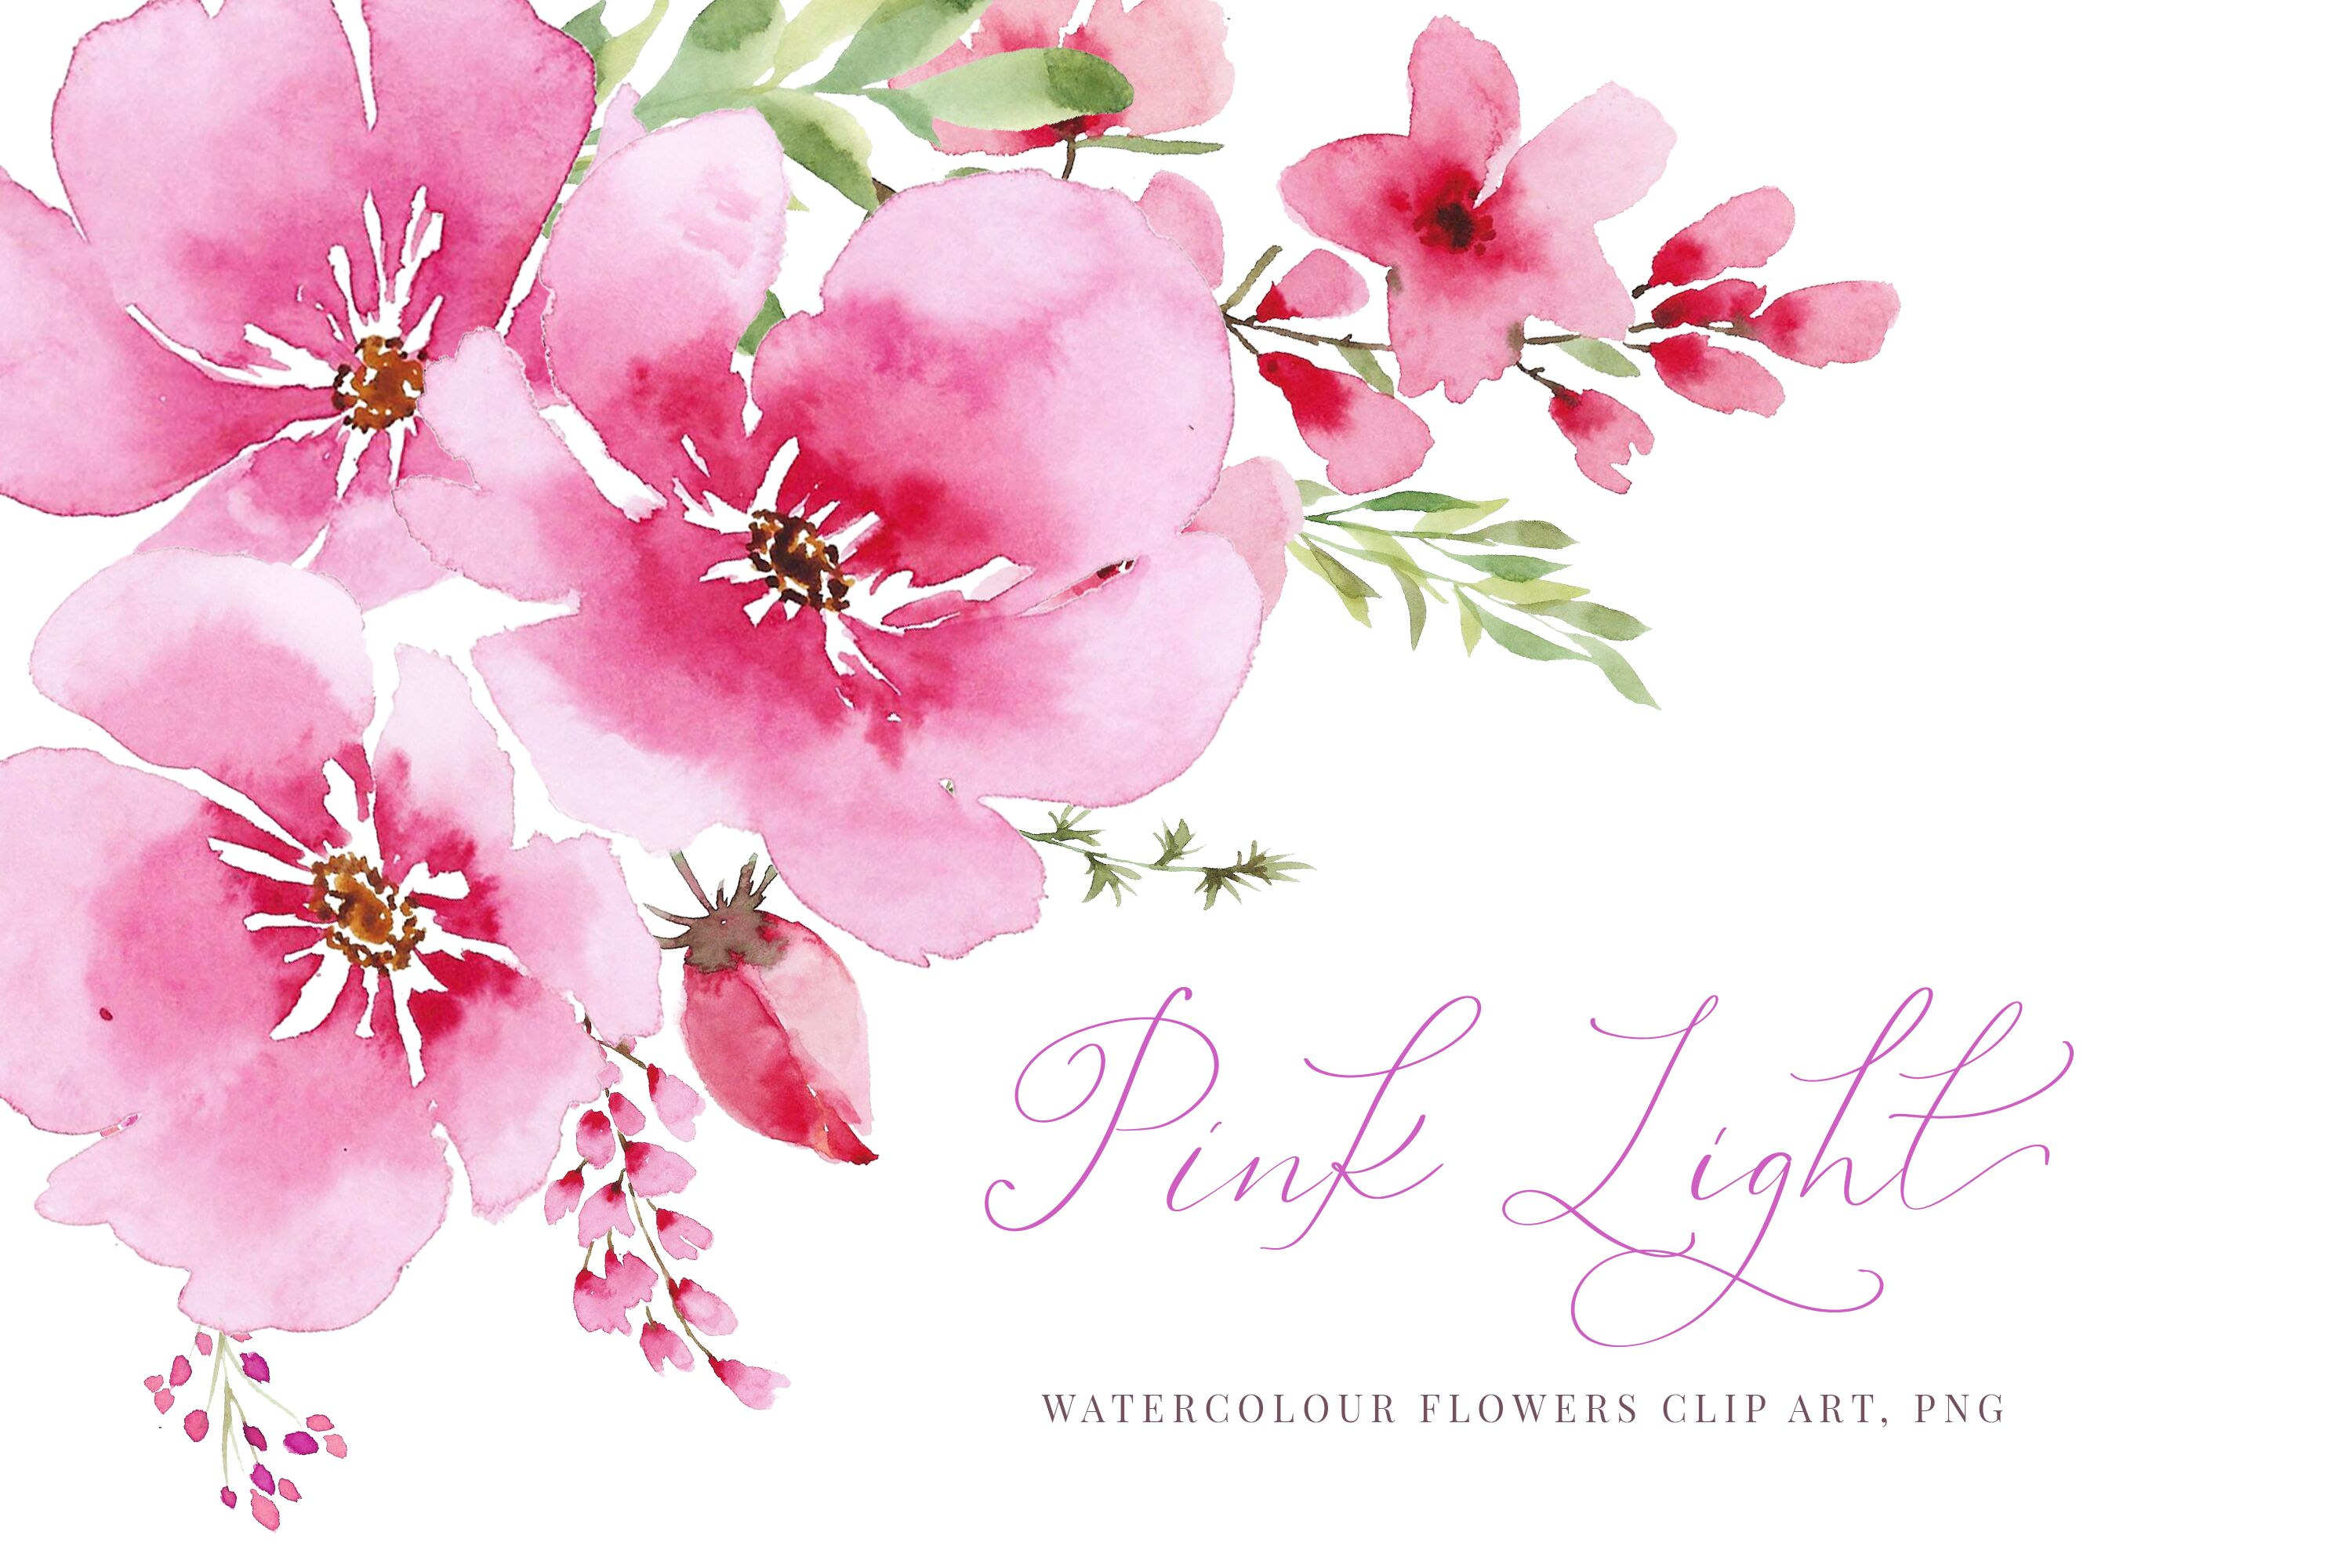 Watercolour Pink Flowers And Greenery Wedding Clipart By